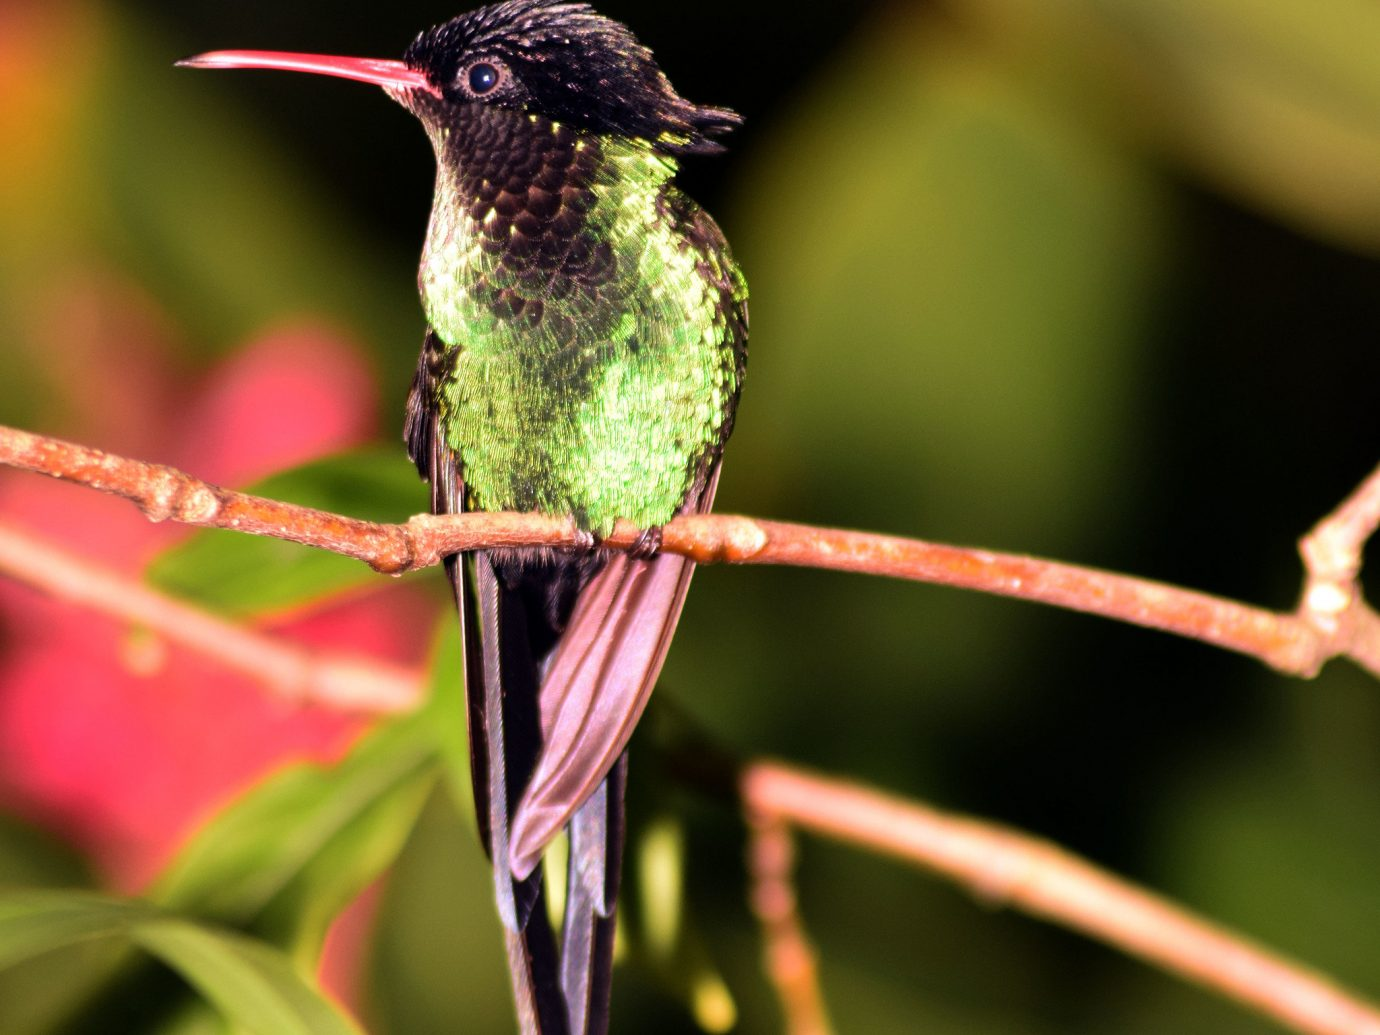 Hotels hummingbird animal Nature Bird green beak flora fauna flower botany close up plant macro photography leaf branch plant stem pollinator